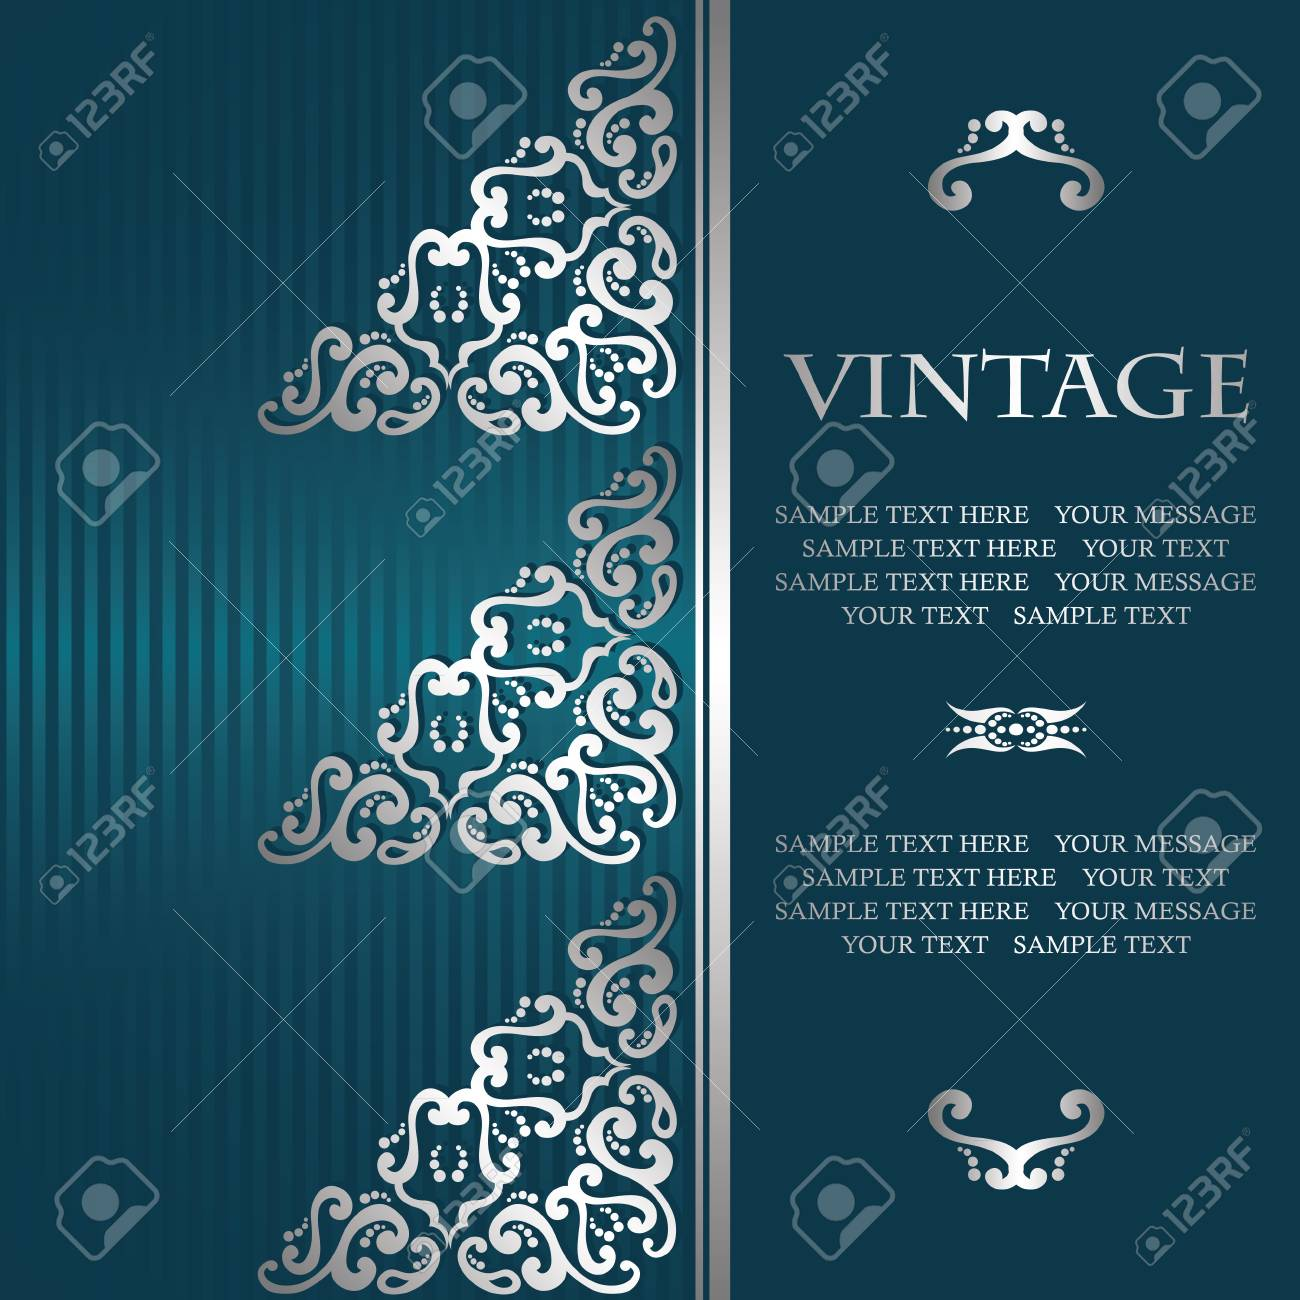 Vintage Design For Your Invitation Card Retro Background With Royalty Free Cliparts Vectors And Stock Illustration Image 85408279